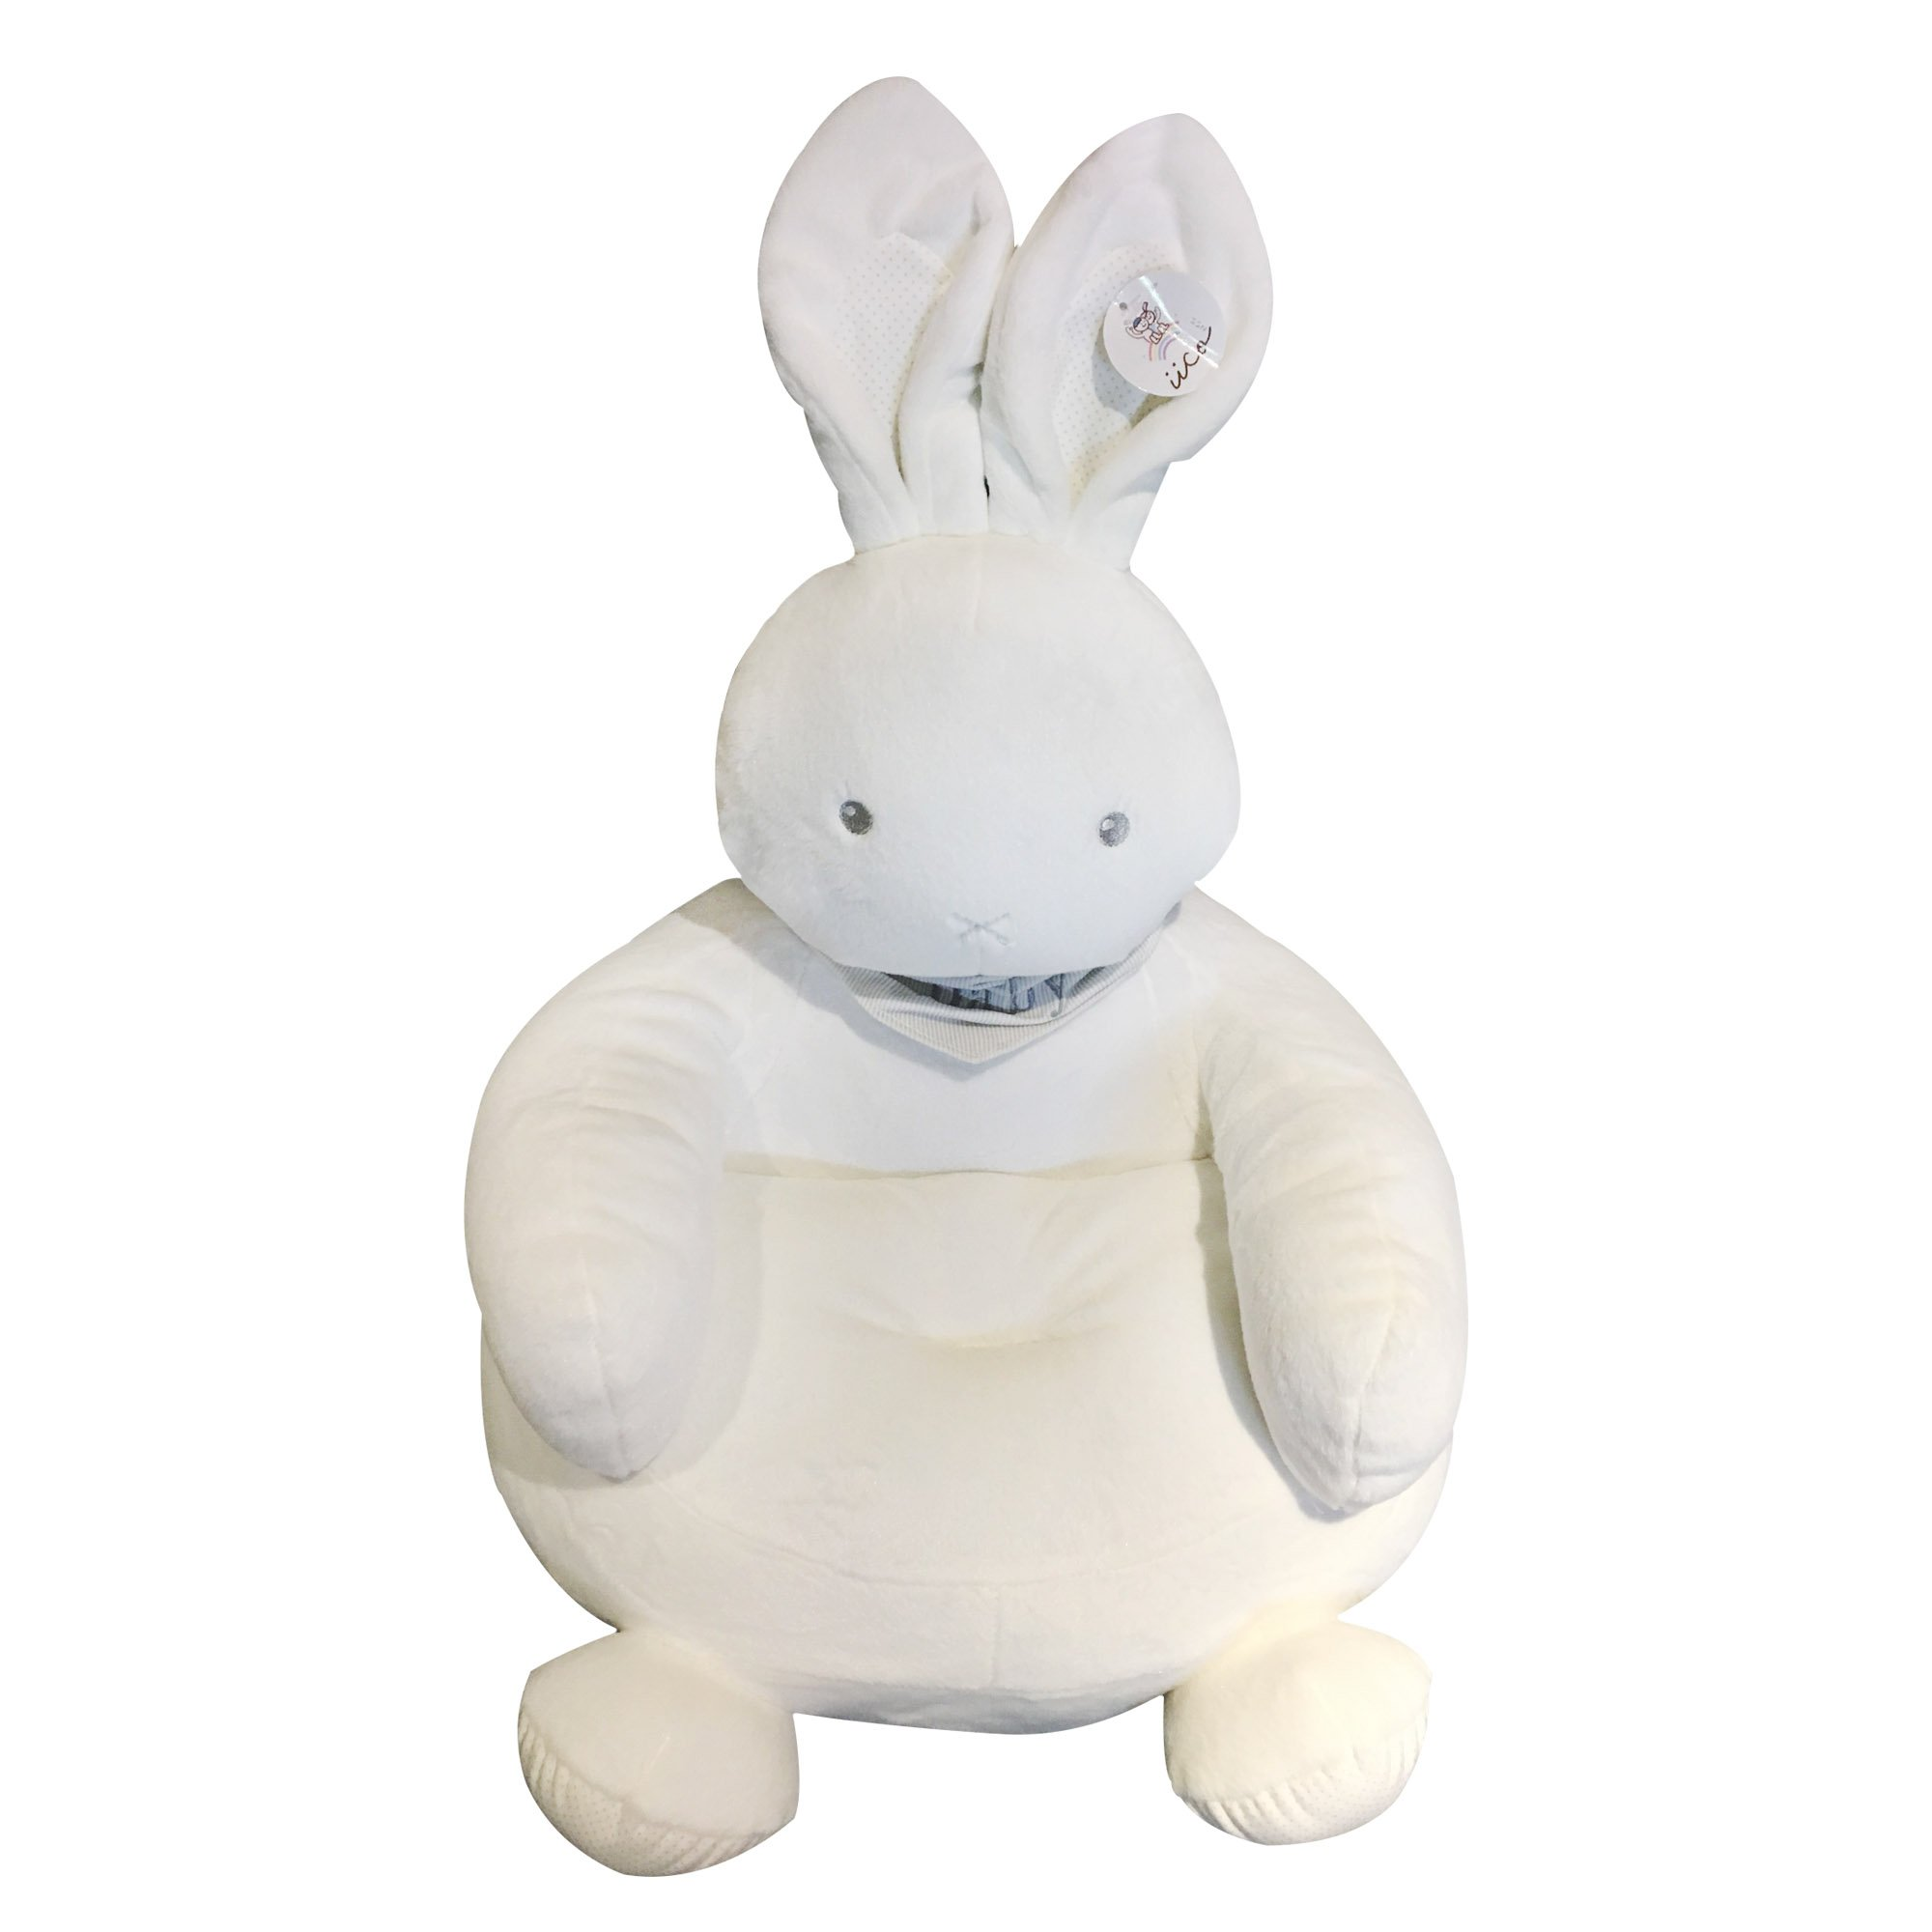 Ticoks Plush Unicorn/Bunny/Rabbit Sofa for babies to Sit up Cute Animals Cartoon Arms Chair Tatami Sofa,Gifts for Babies and Kids (Rabbit)